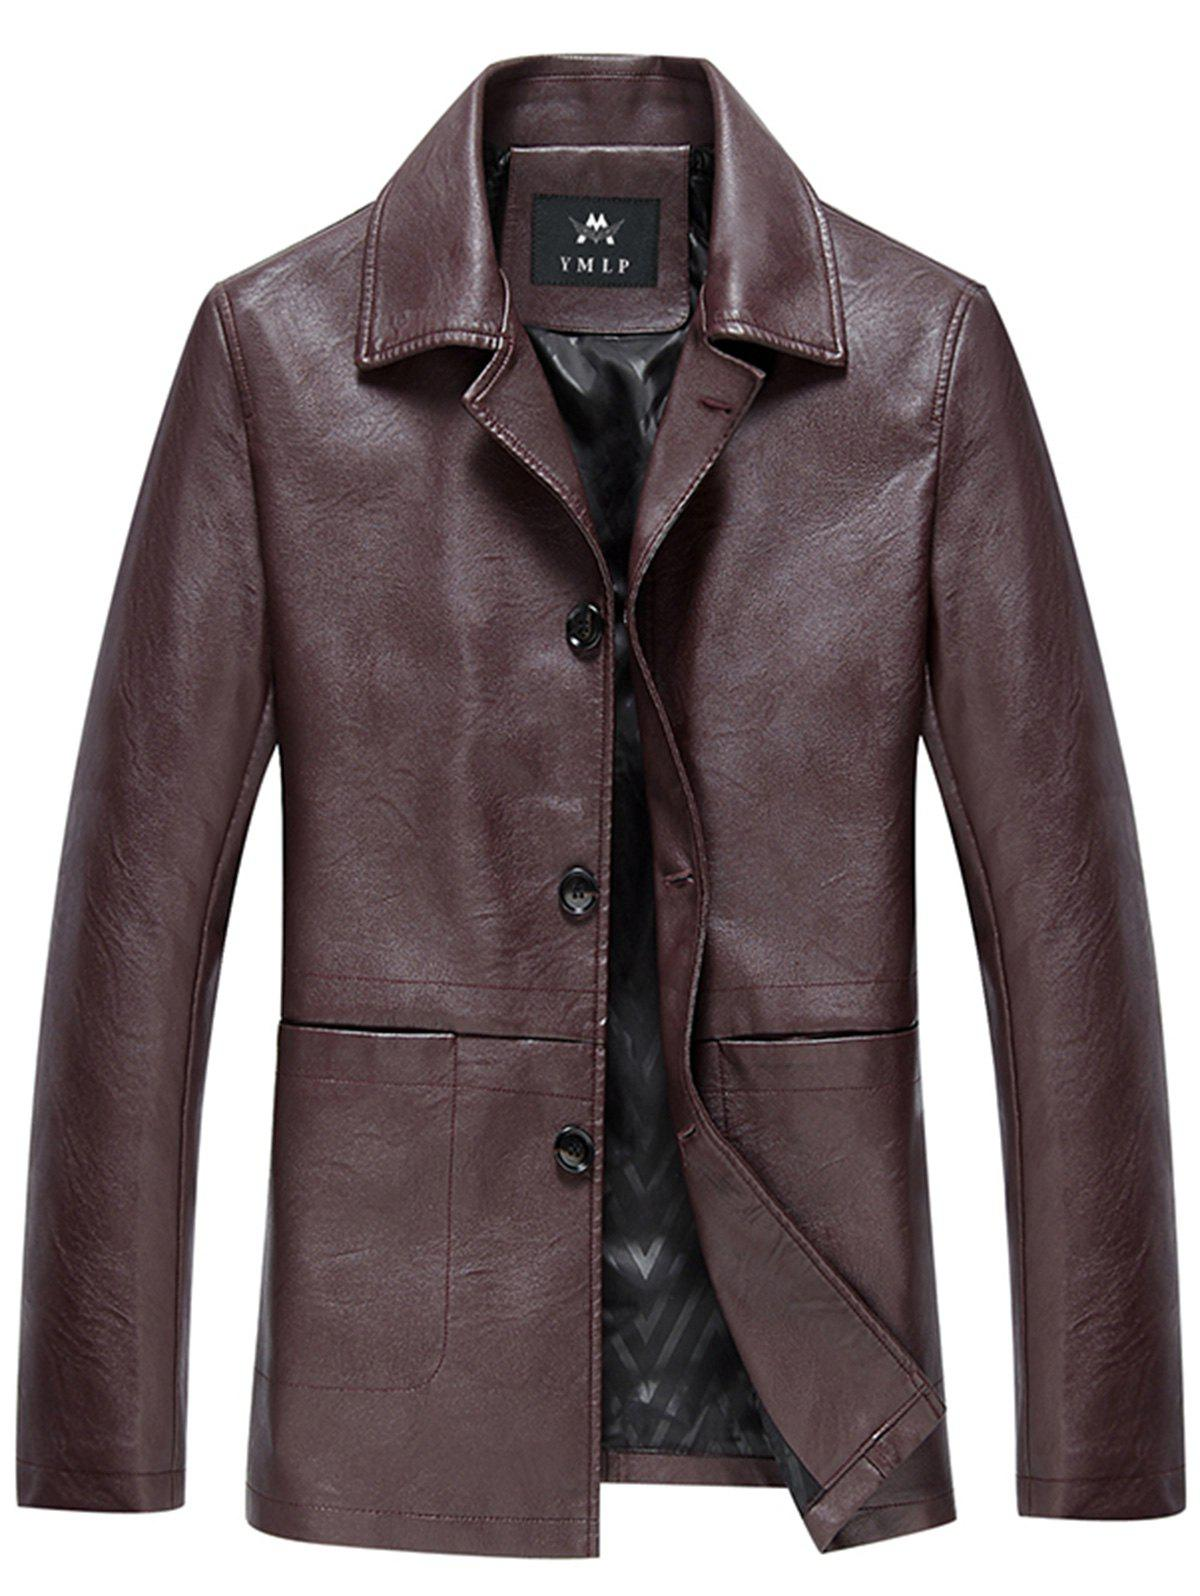 Shops PU Leather Single Breasted Jacket